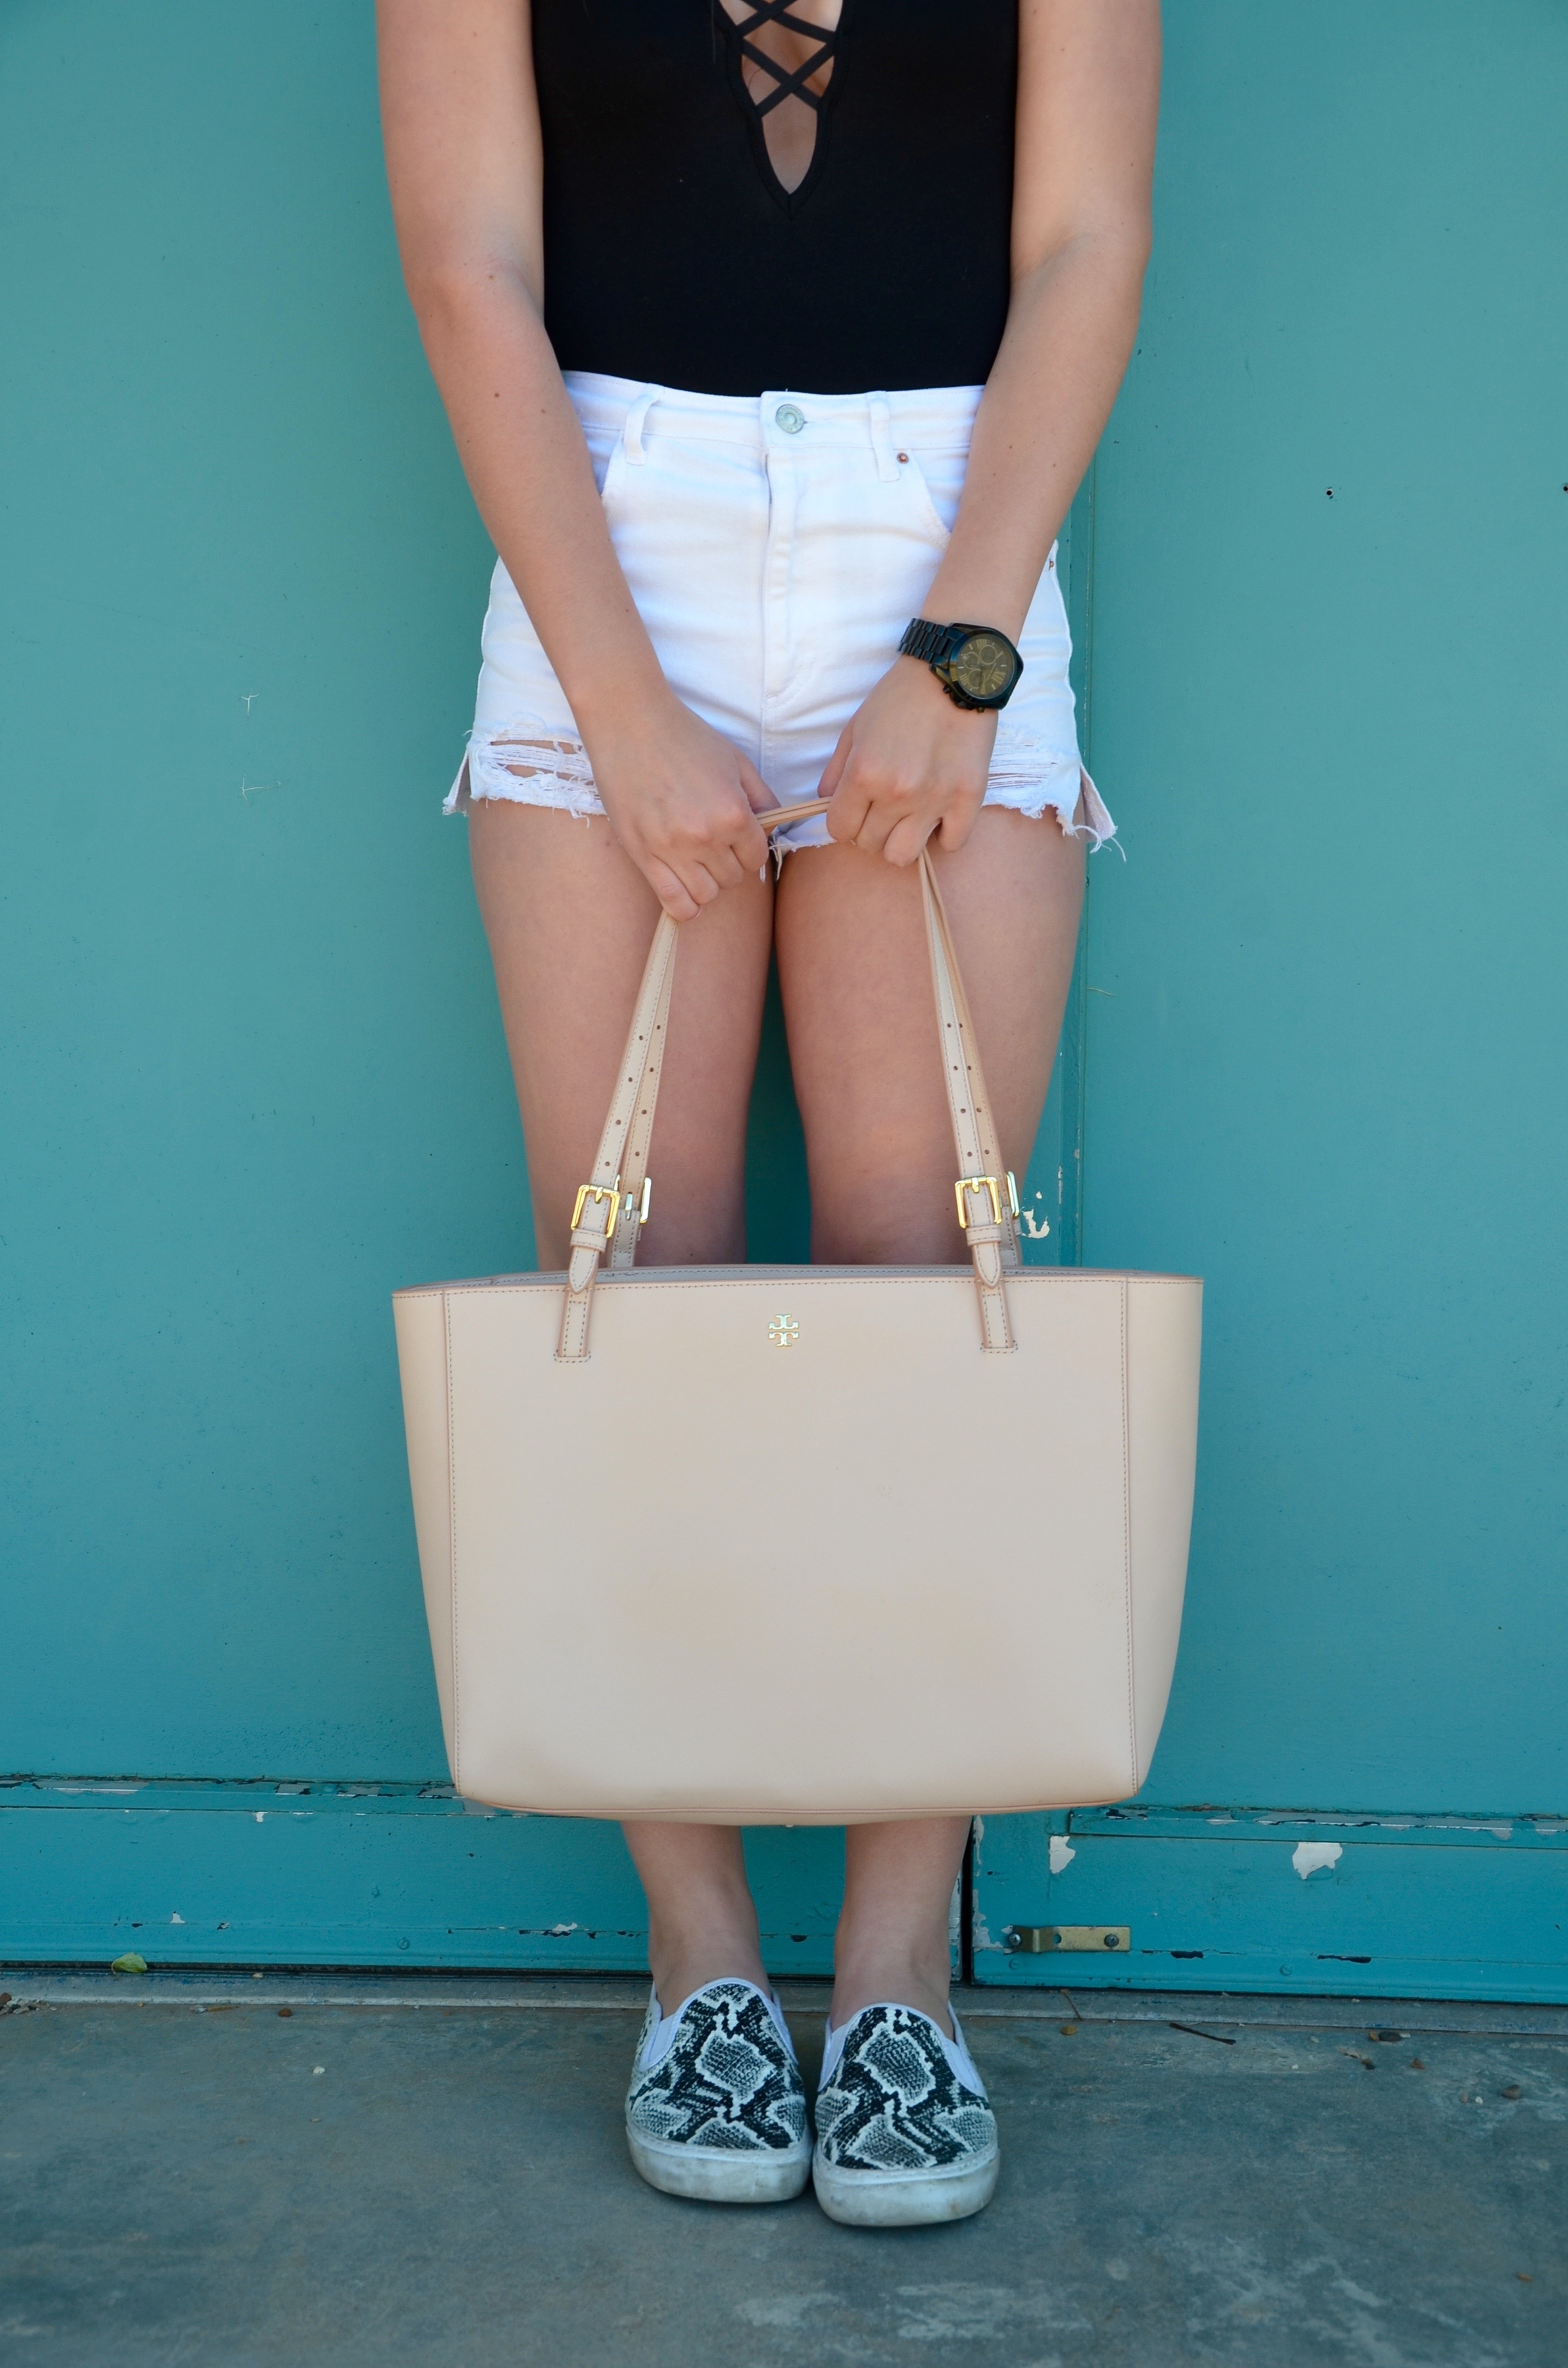 tory burch tote for travel - Travel Outfit Of The Day by popular Texas style blogger Audrey Madison Stowe